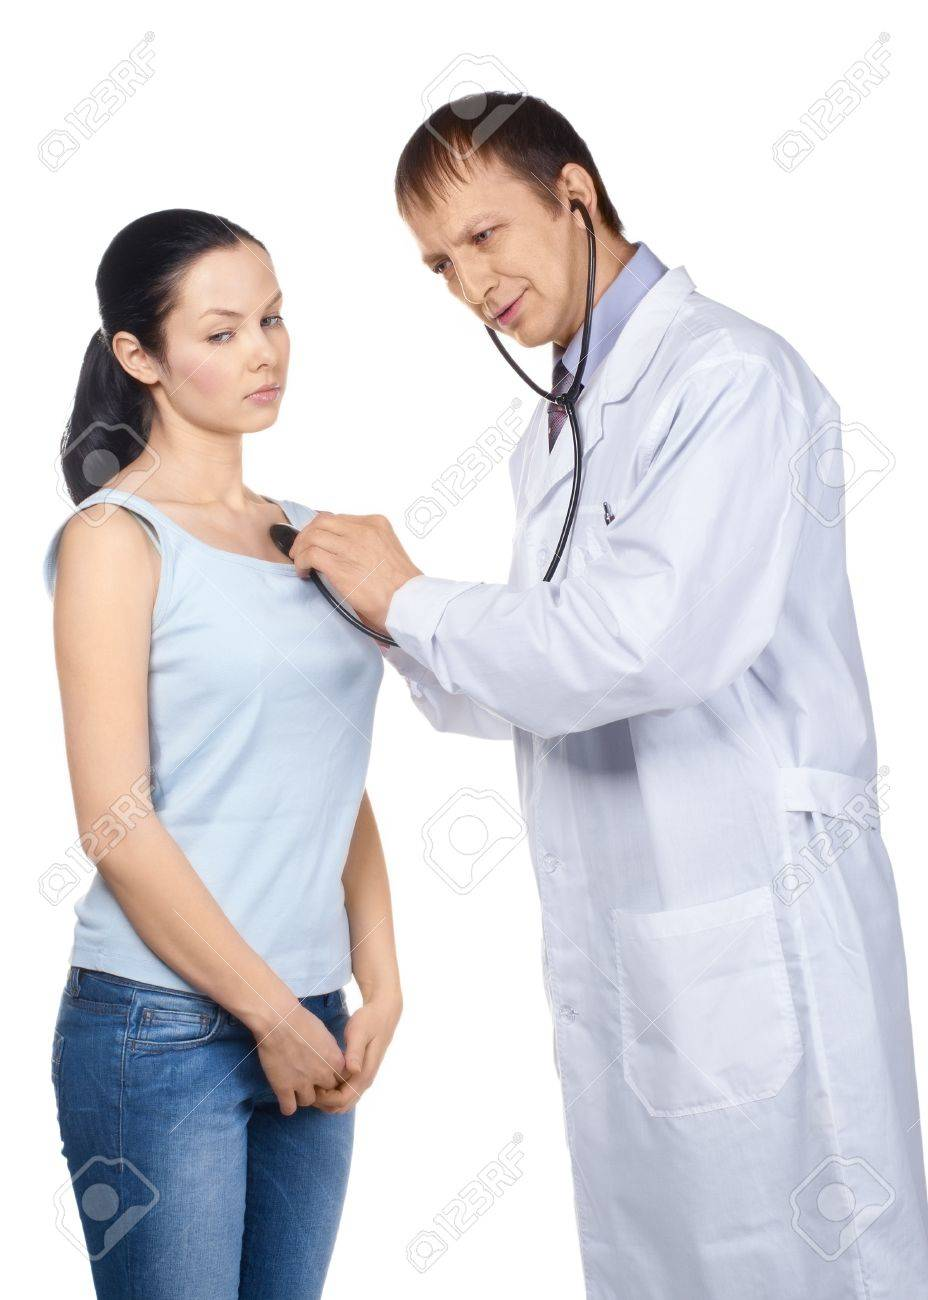 Doctor Listening to Heartbeat Doctor Listening The Heartbeat